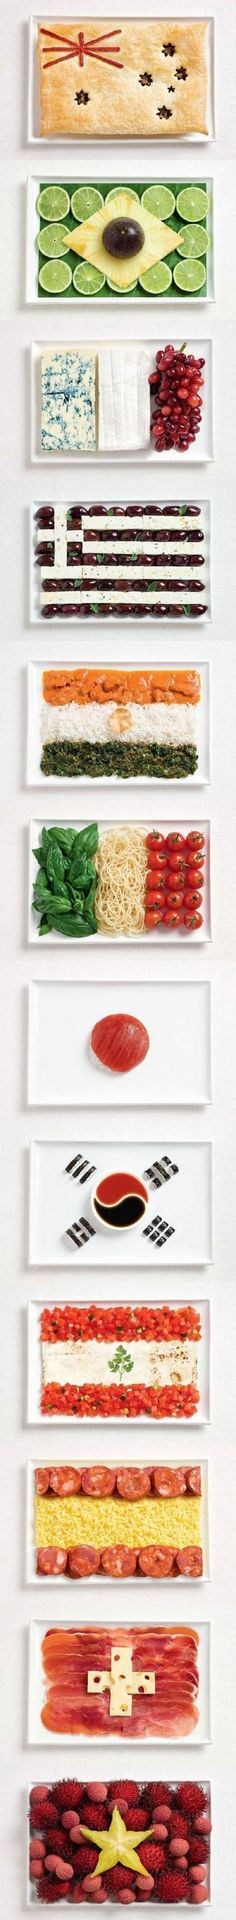 Flags made from food!